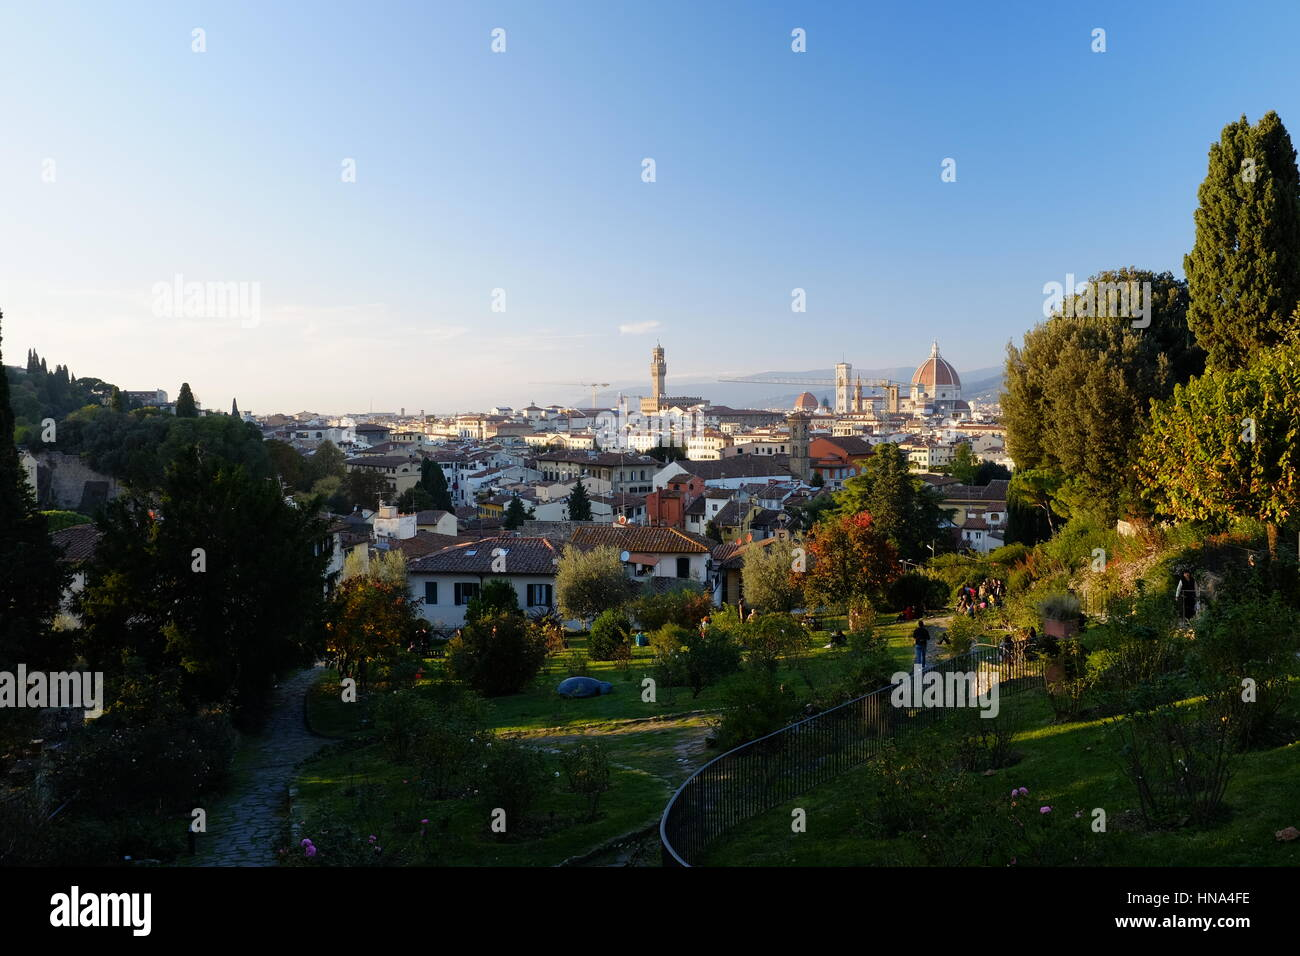 Florence Skyline - Firenze skyline panoramic view from The Rose Garden (Giardino delle rose) - Daylight golden hour - Stock Image